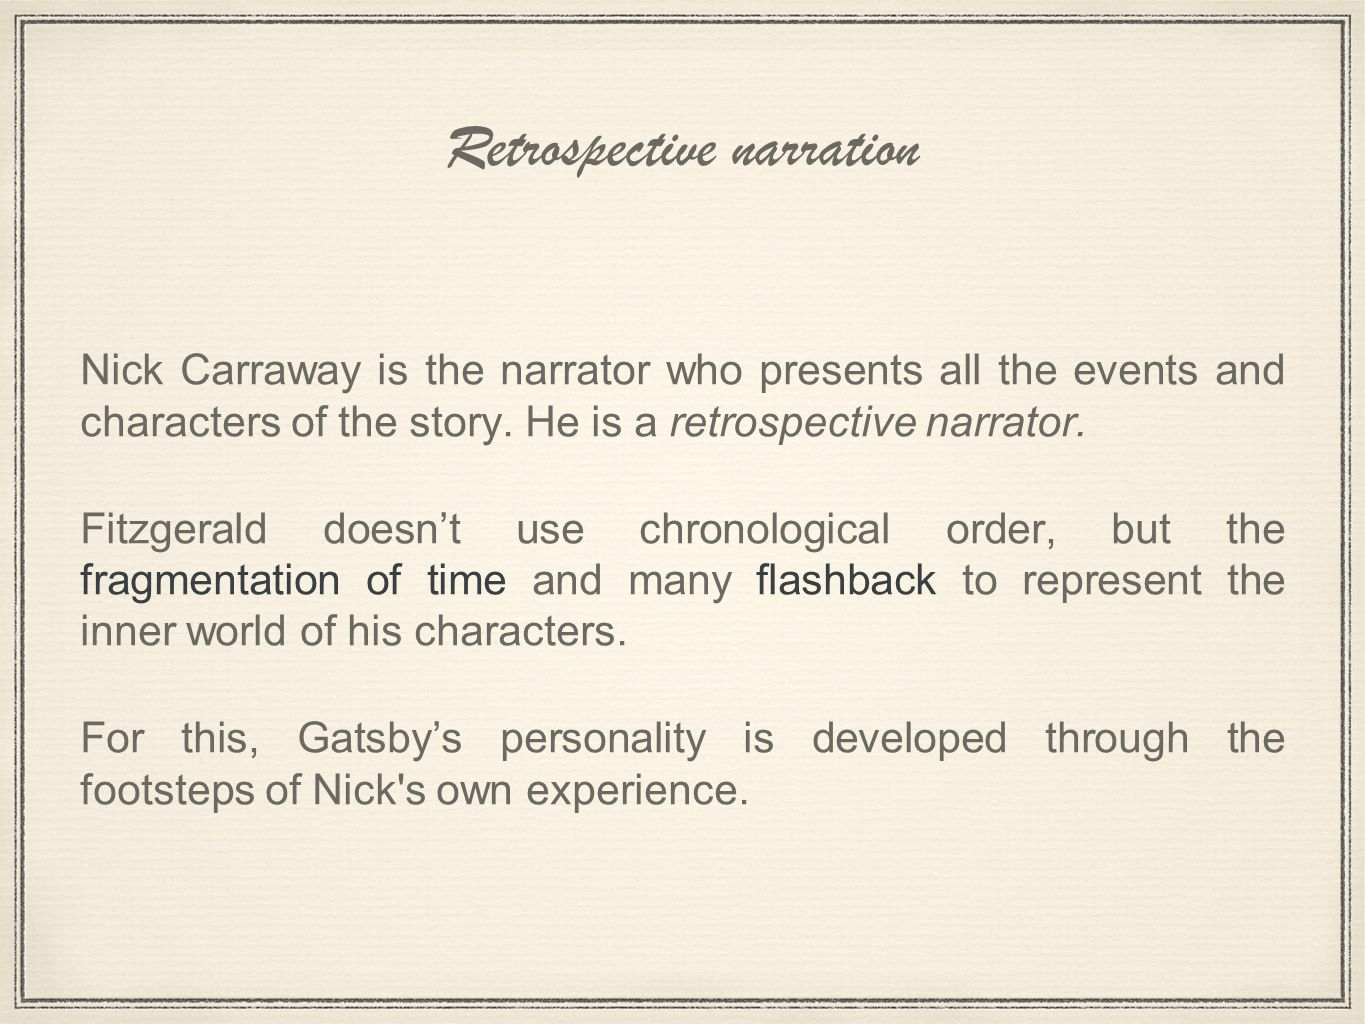 the characterization and credibility of nick carraway the narrator of f scott fitzgeralds novel the  The main narrative voice belongs to nick carraway, a character within the text for most of the novel, nick is generally the great gatsby » nick as narrator now.